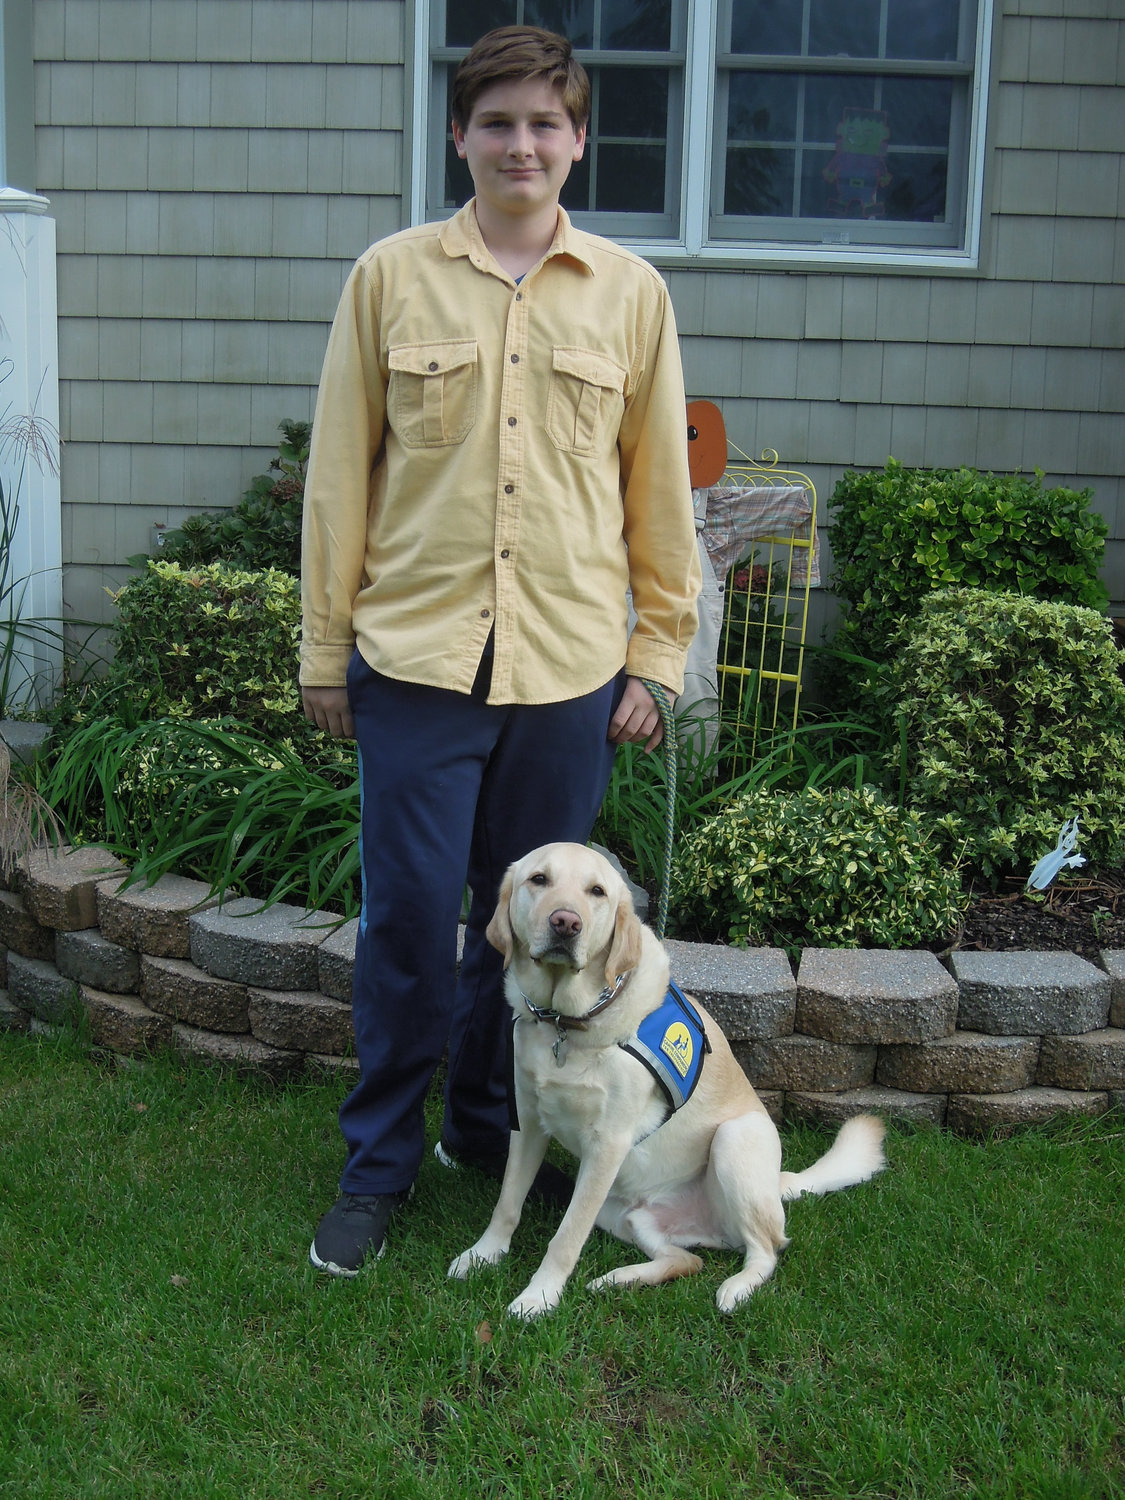 Luke Tordy with his service dog, Dragon, outside their Wantagh home.